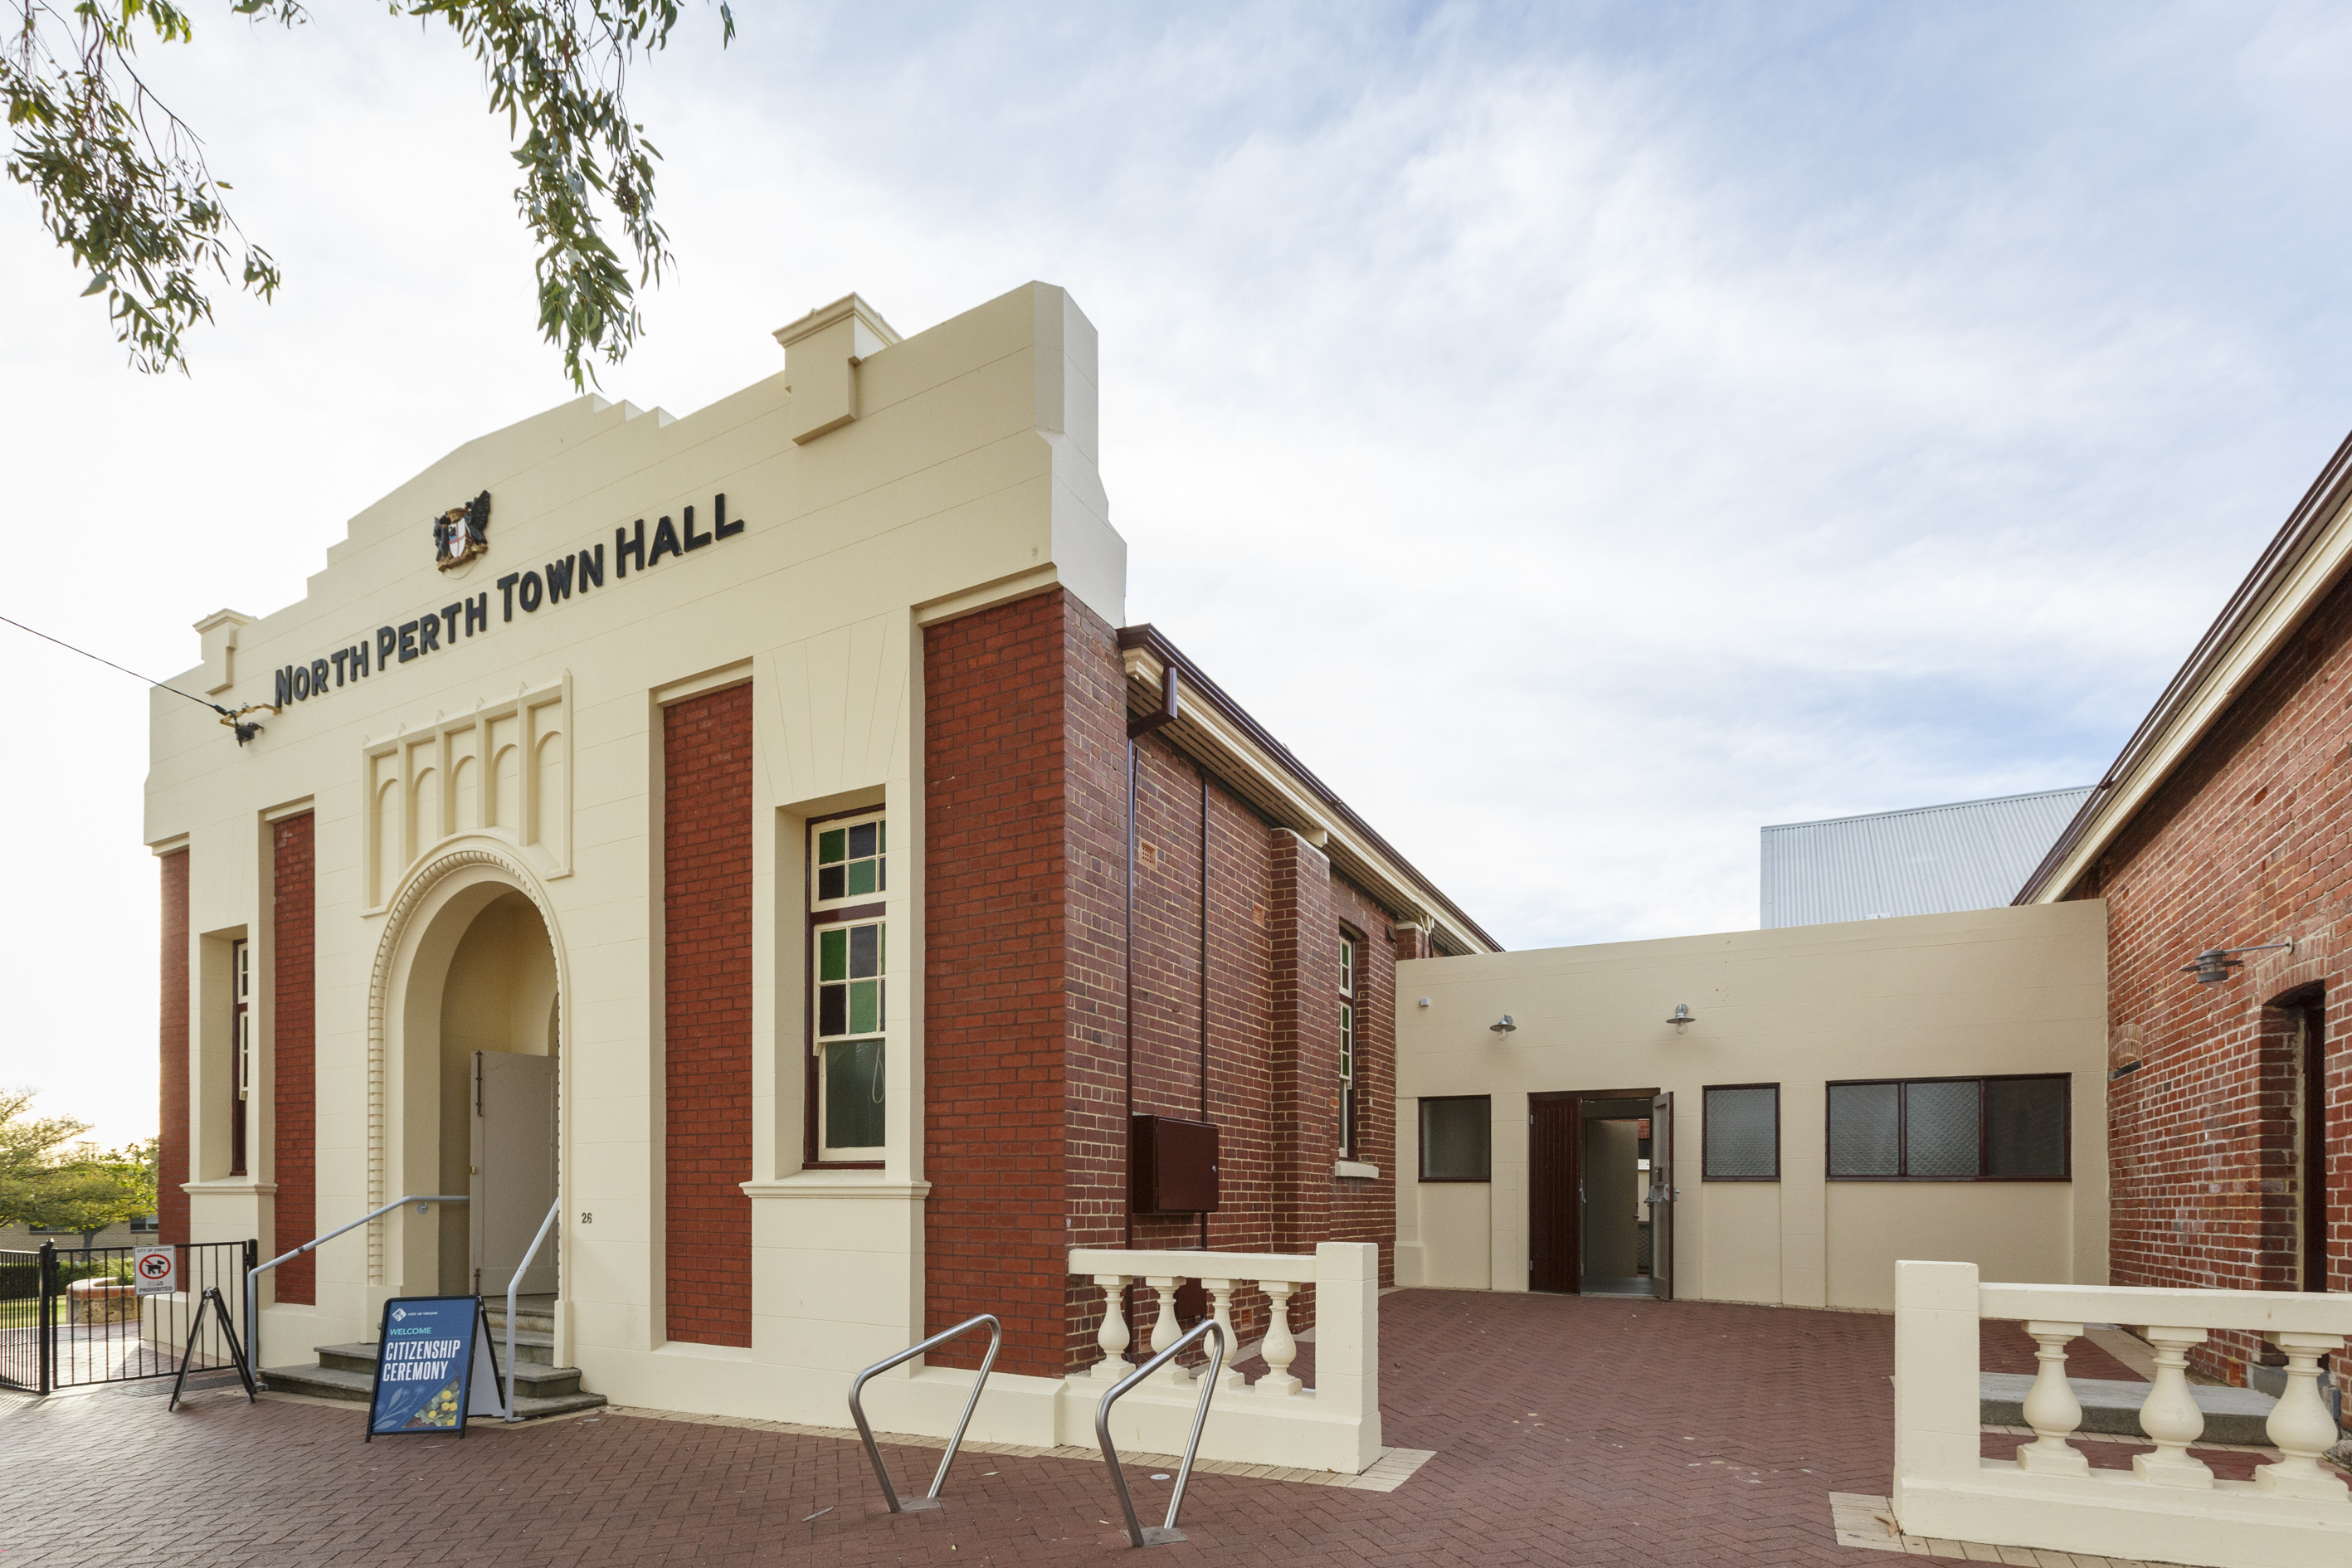 North Perth Town Hall SpacetoCo